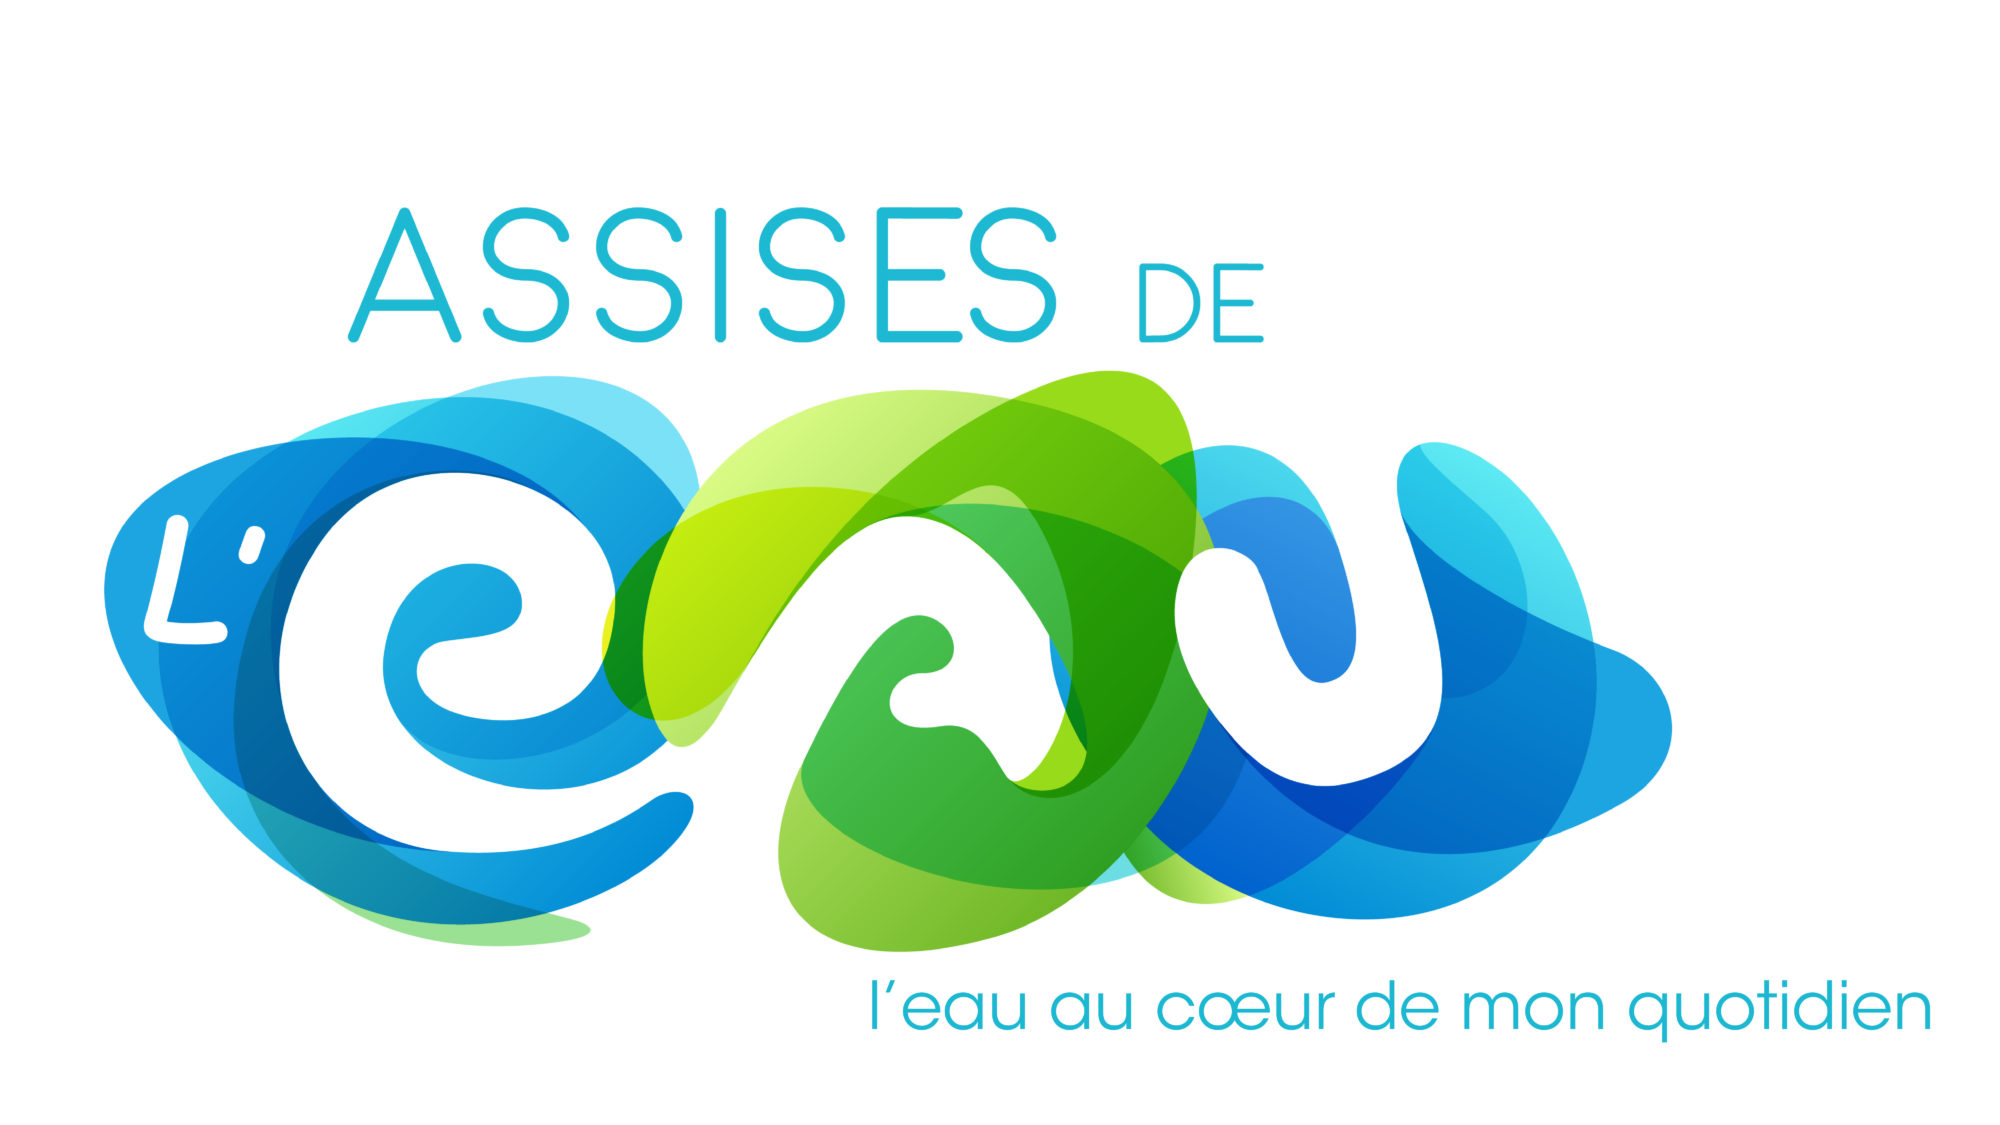 Assises de l'eau : Motion des associations nationales de collectivités territoriales